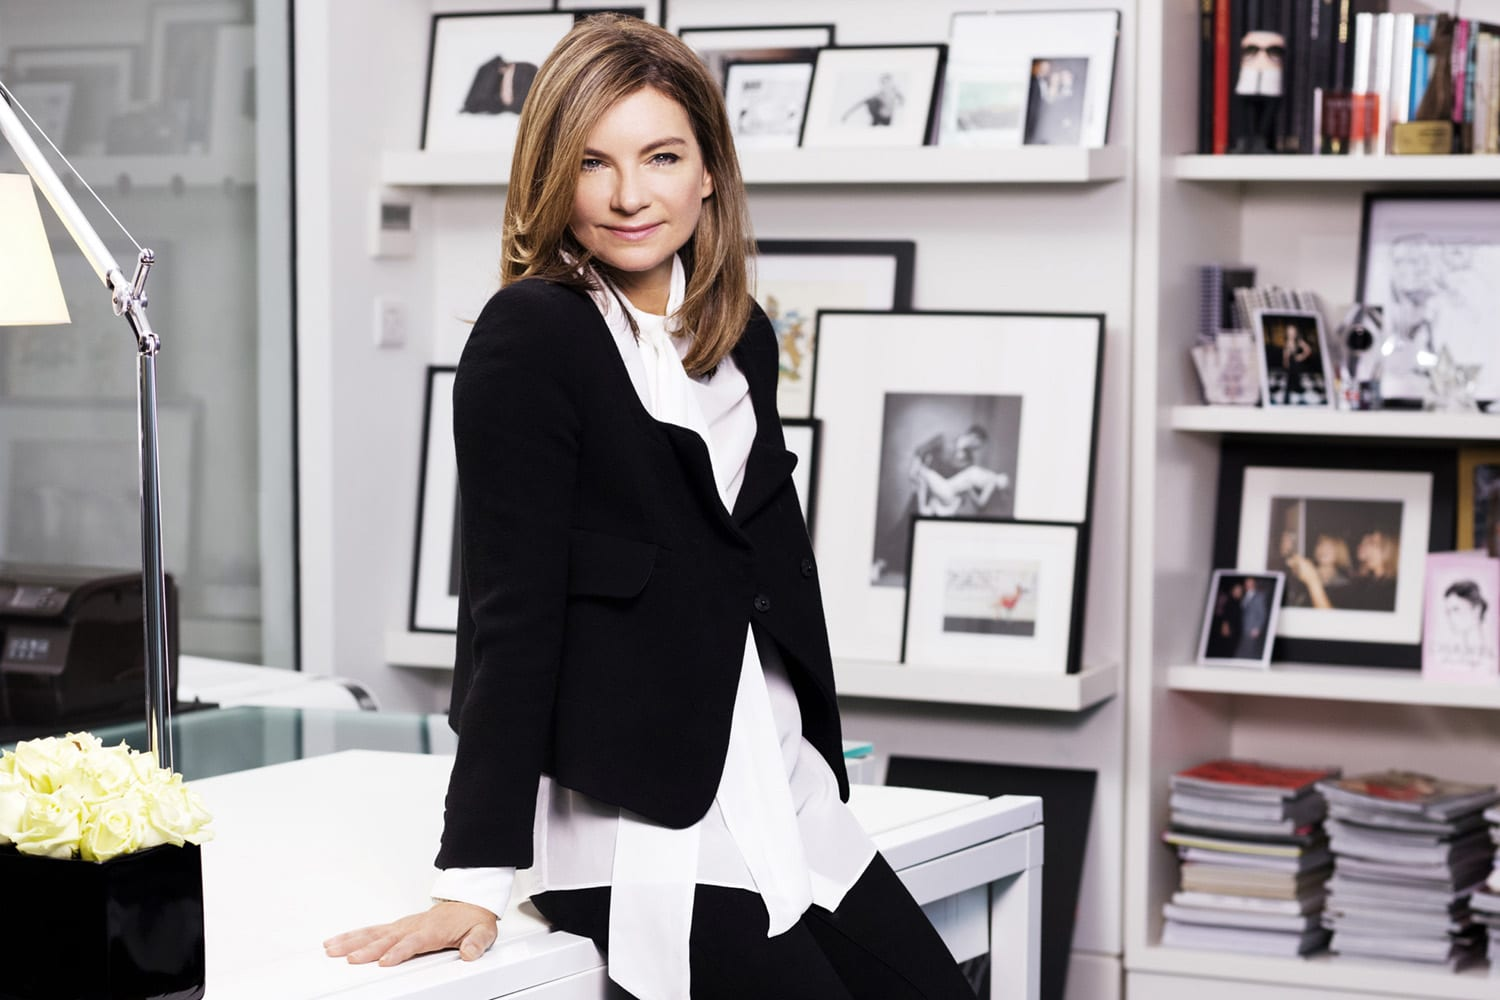 Le Meilleur Career Advice From The Most Successful Woman In Fashion Ce Mois Ci